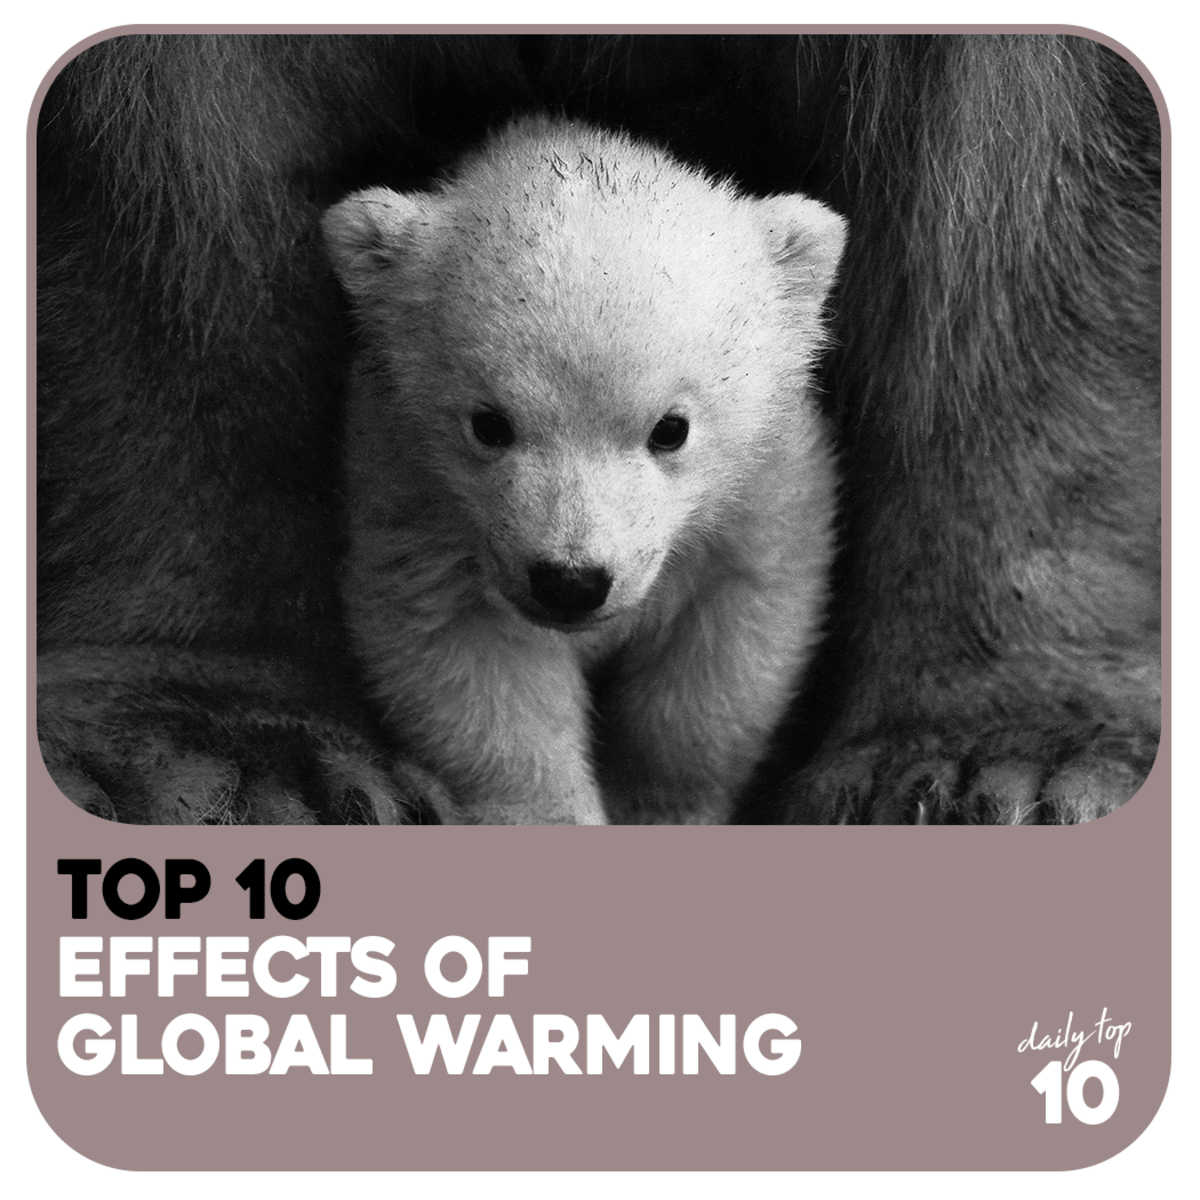 Top 10 Worst Effects of Global Warming and What We Can Do to Stop Them